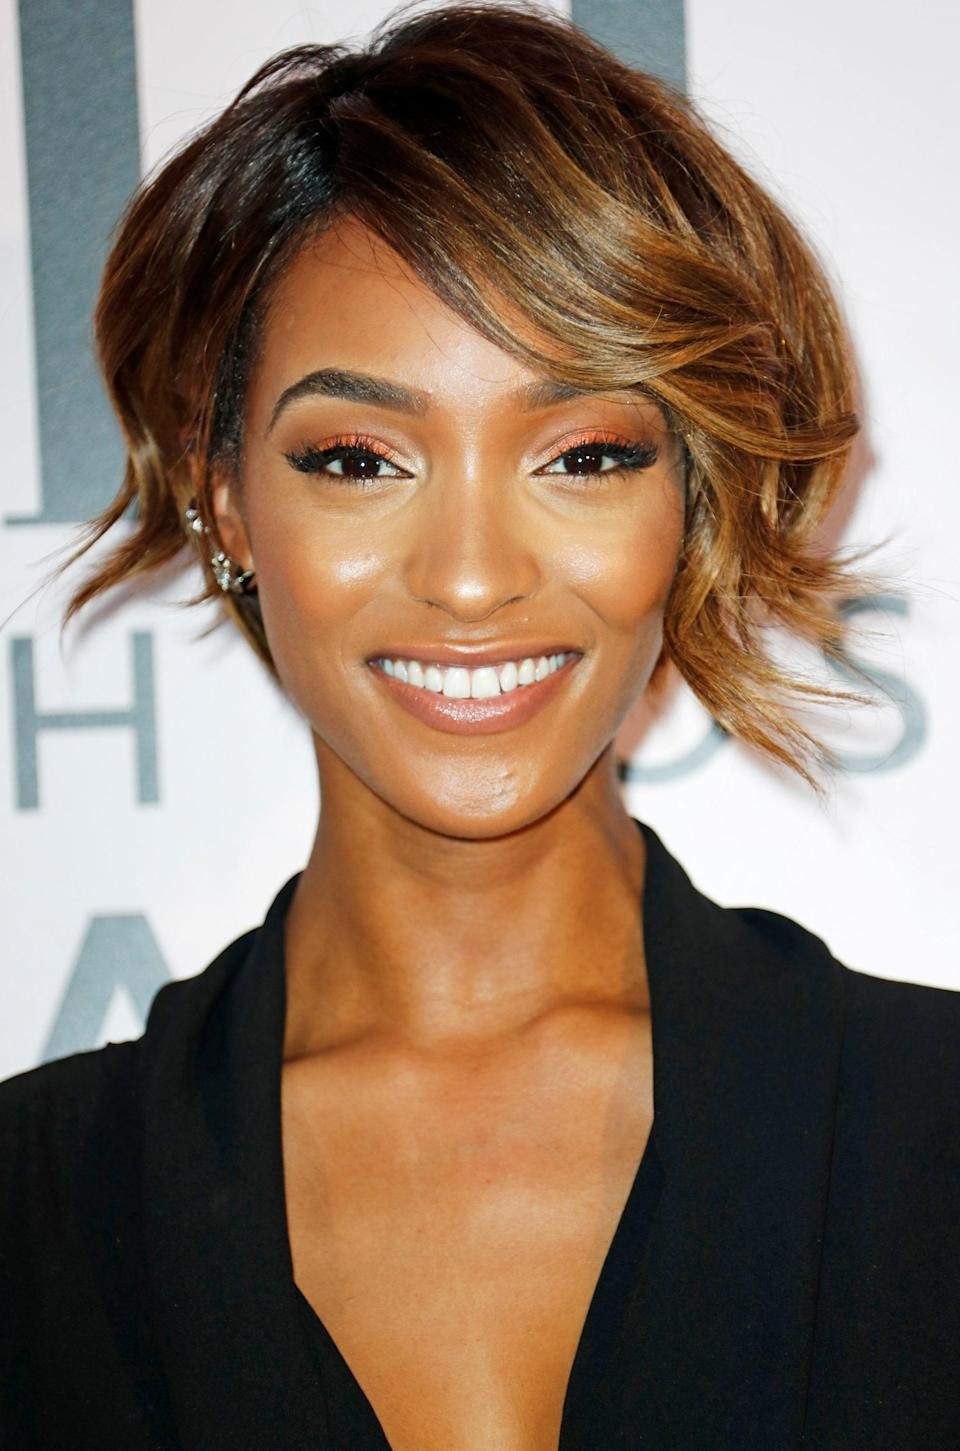 "Long in the front plus short in the back equals looks for days, as shown by Dunn's very versatile cut that's just a hint shorter than a <a href=""https://www.glamour.com/gallery/bob-haircuts-and-hairstyles?mbid=synd_yahoo_rss"" rel=""nofollow noopener"" target=""_blank"" data-ylk=""slk:bob"" class=""link rapid-noclick-resp"">bob</a> and longer than a traditional pixie cut."